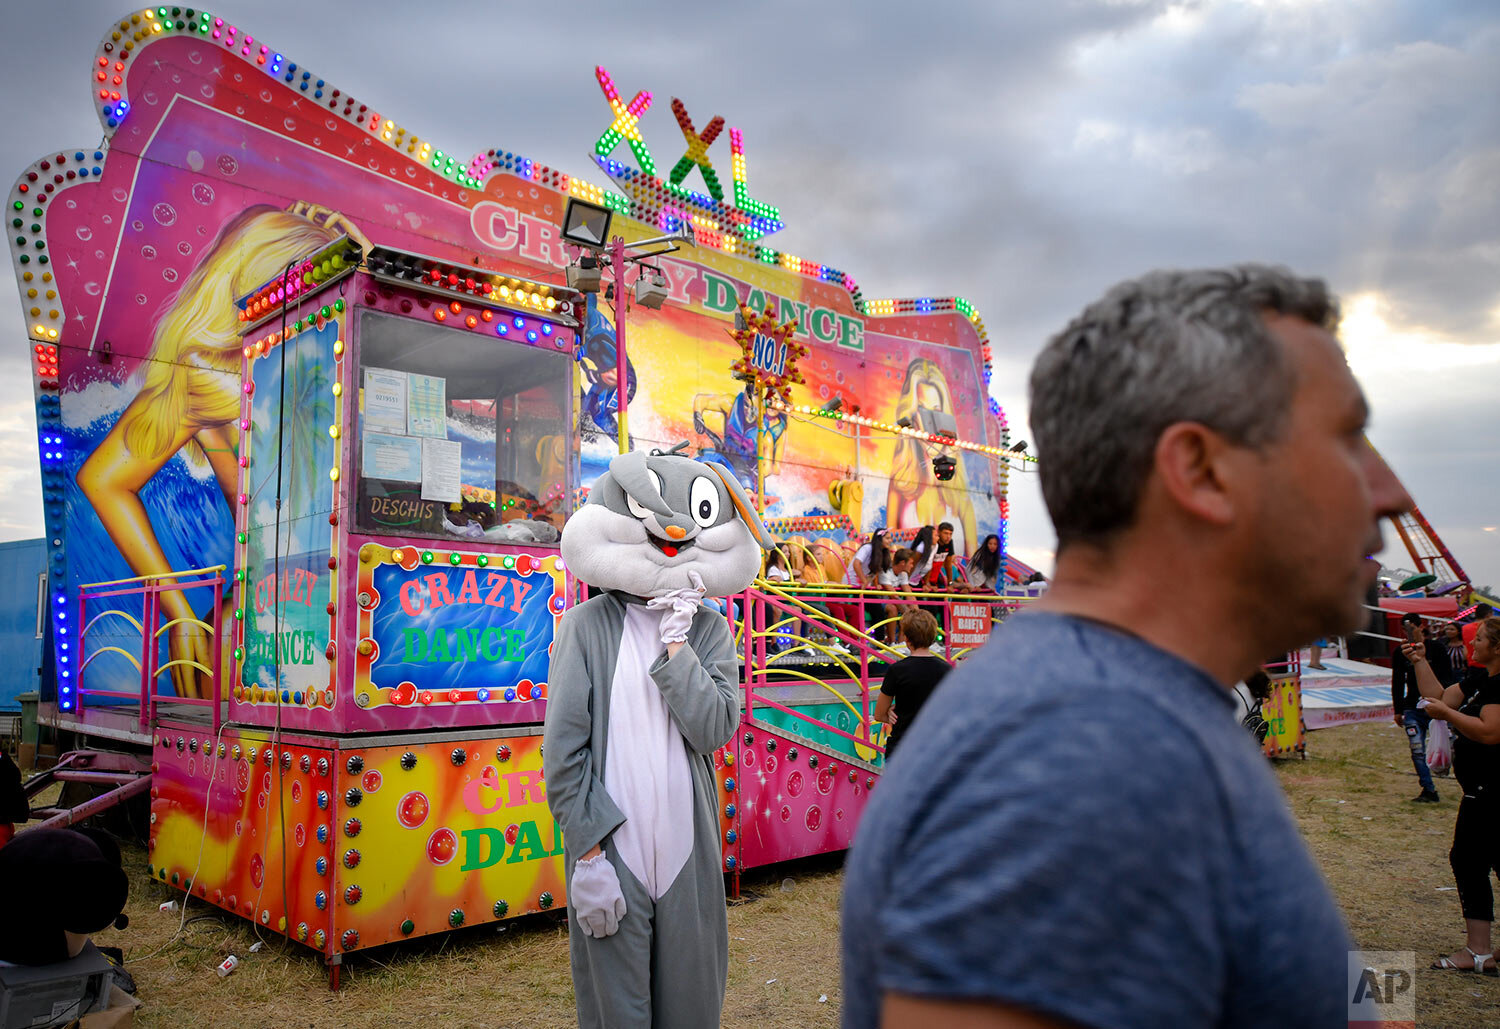 A person wearing a rabbit outfit stands by a ride at an autumn fair in Titu, southern Romania, Sept. 14, 2019. (AP Photo/Andreea Alexandru)